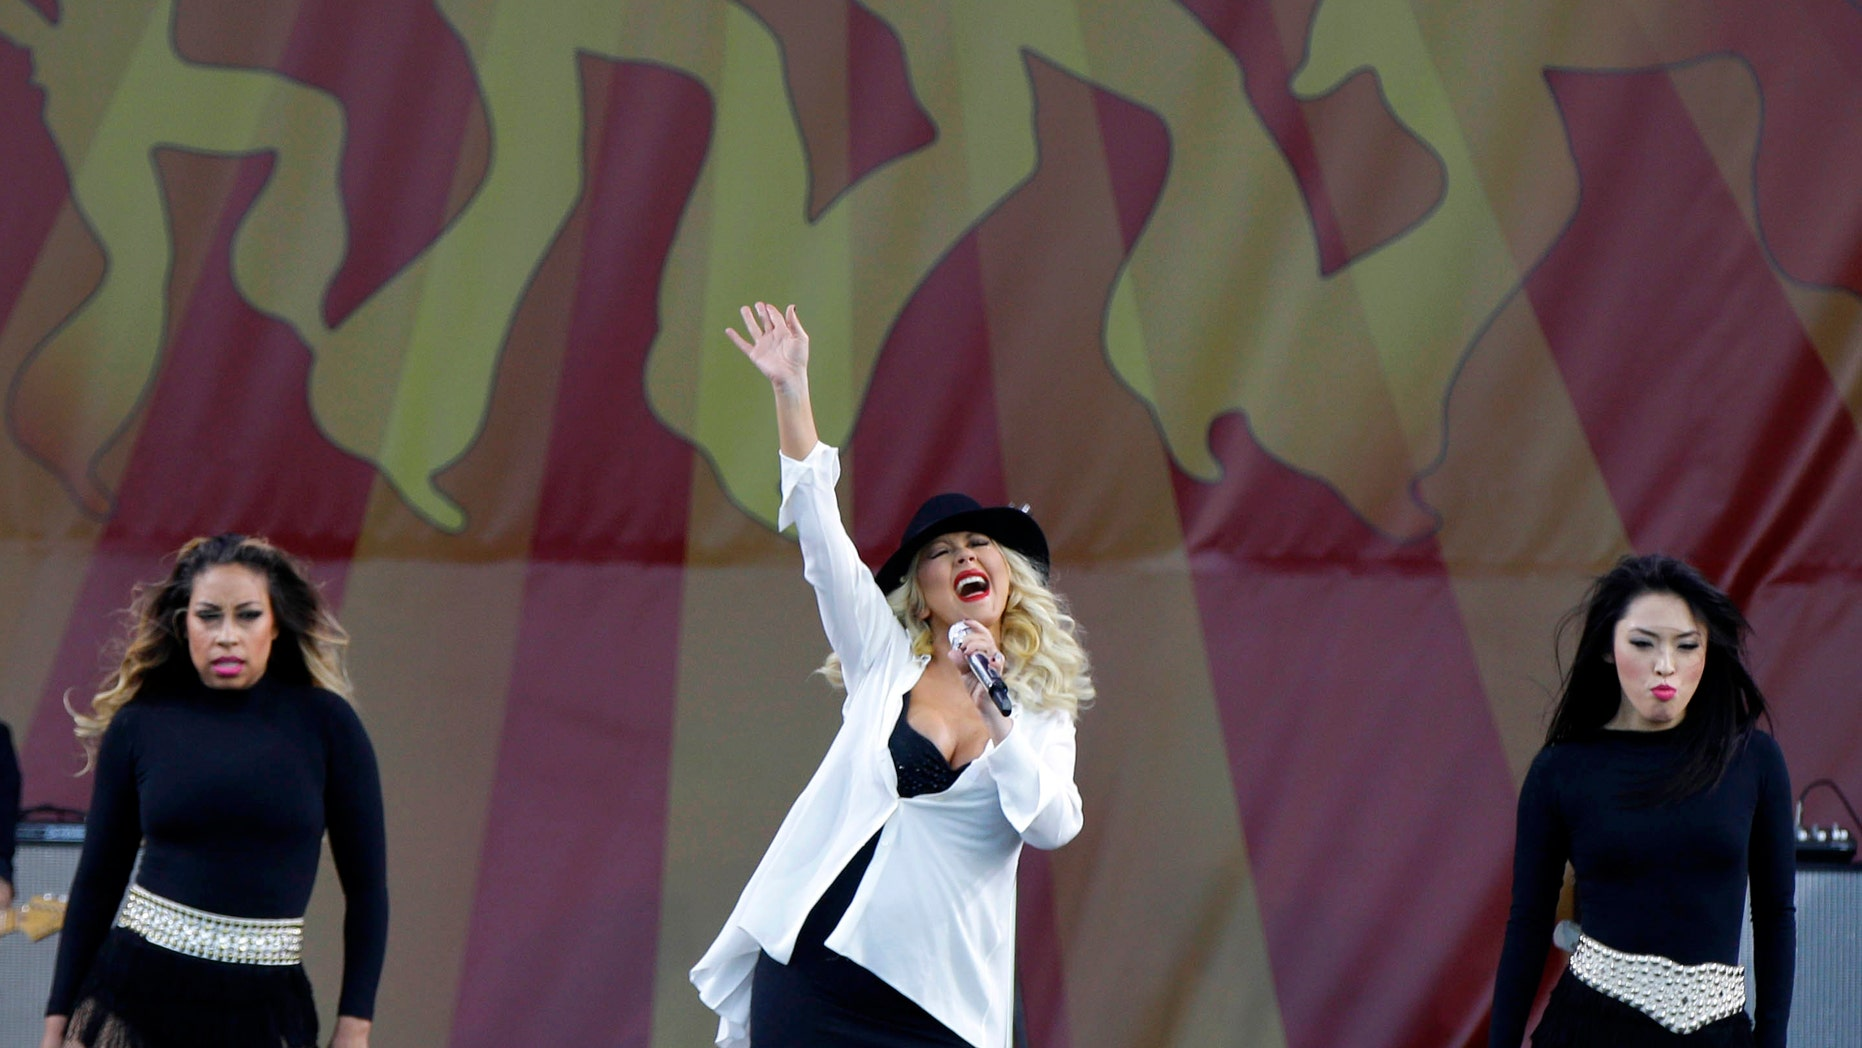 May 2, 2014. Christina Aguilera performs at the New Orleans Jazz and Heritage Festival in New Orleans.